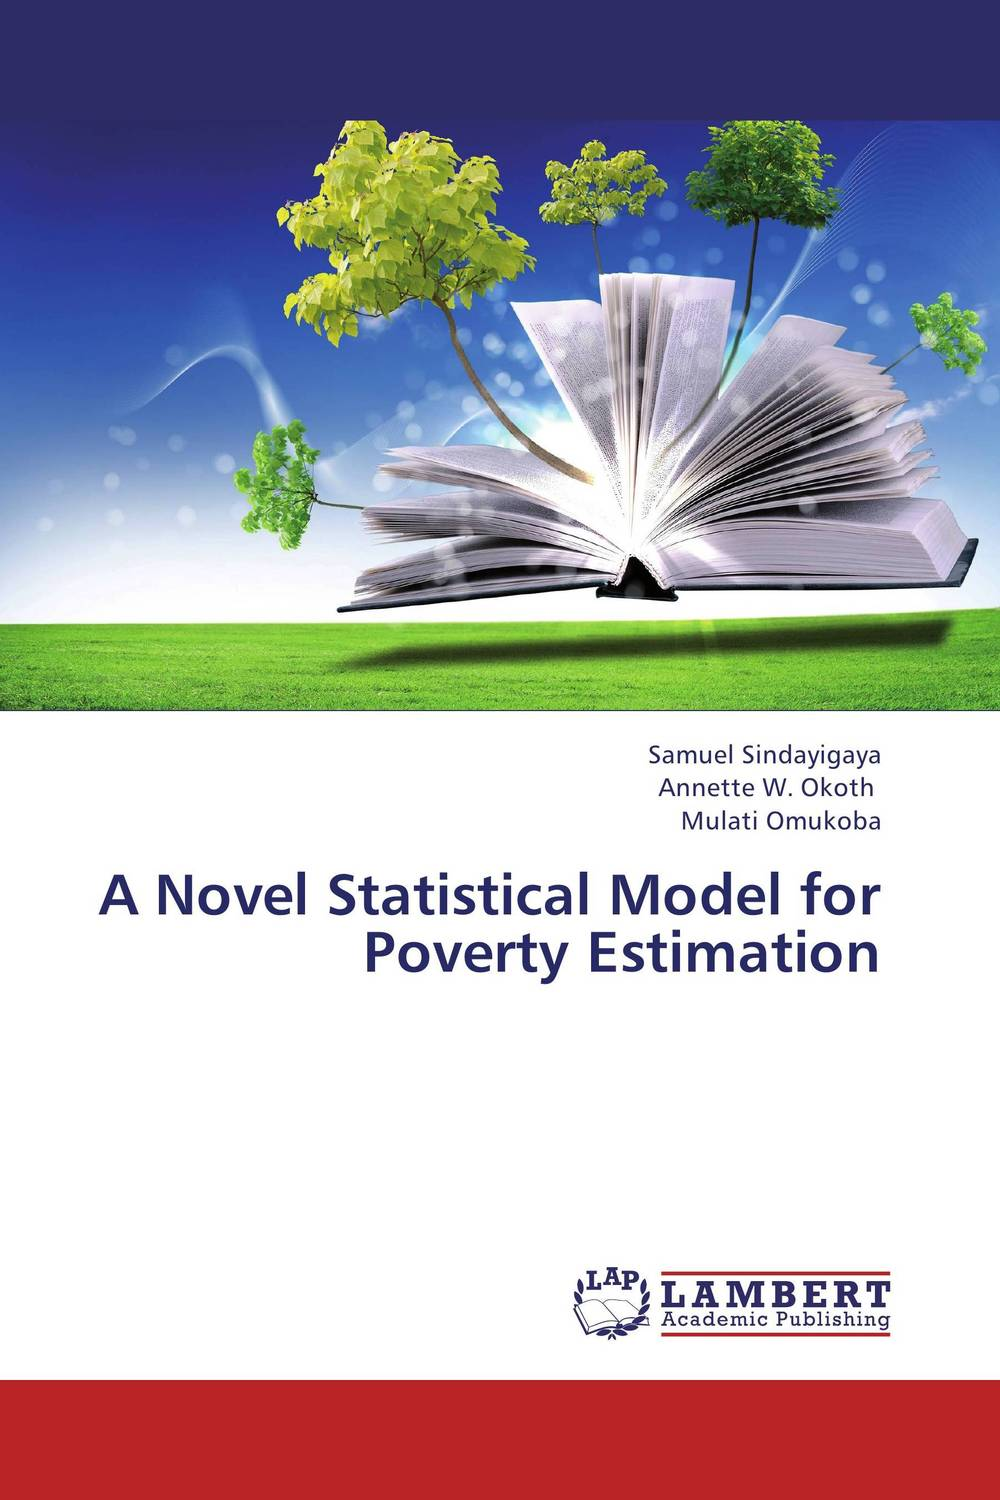 A Novel Statistical Model for Poverty Estimation the lonely polygamist – a novel